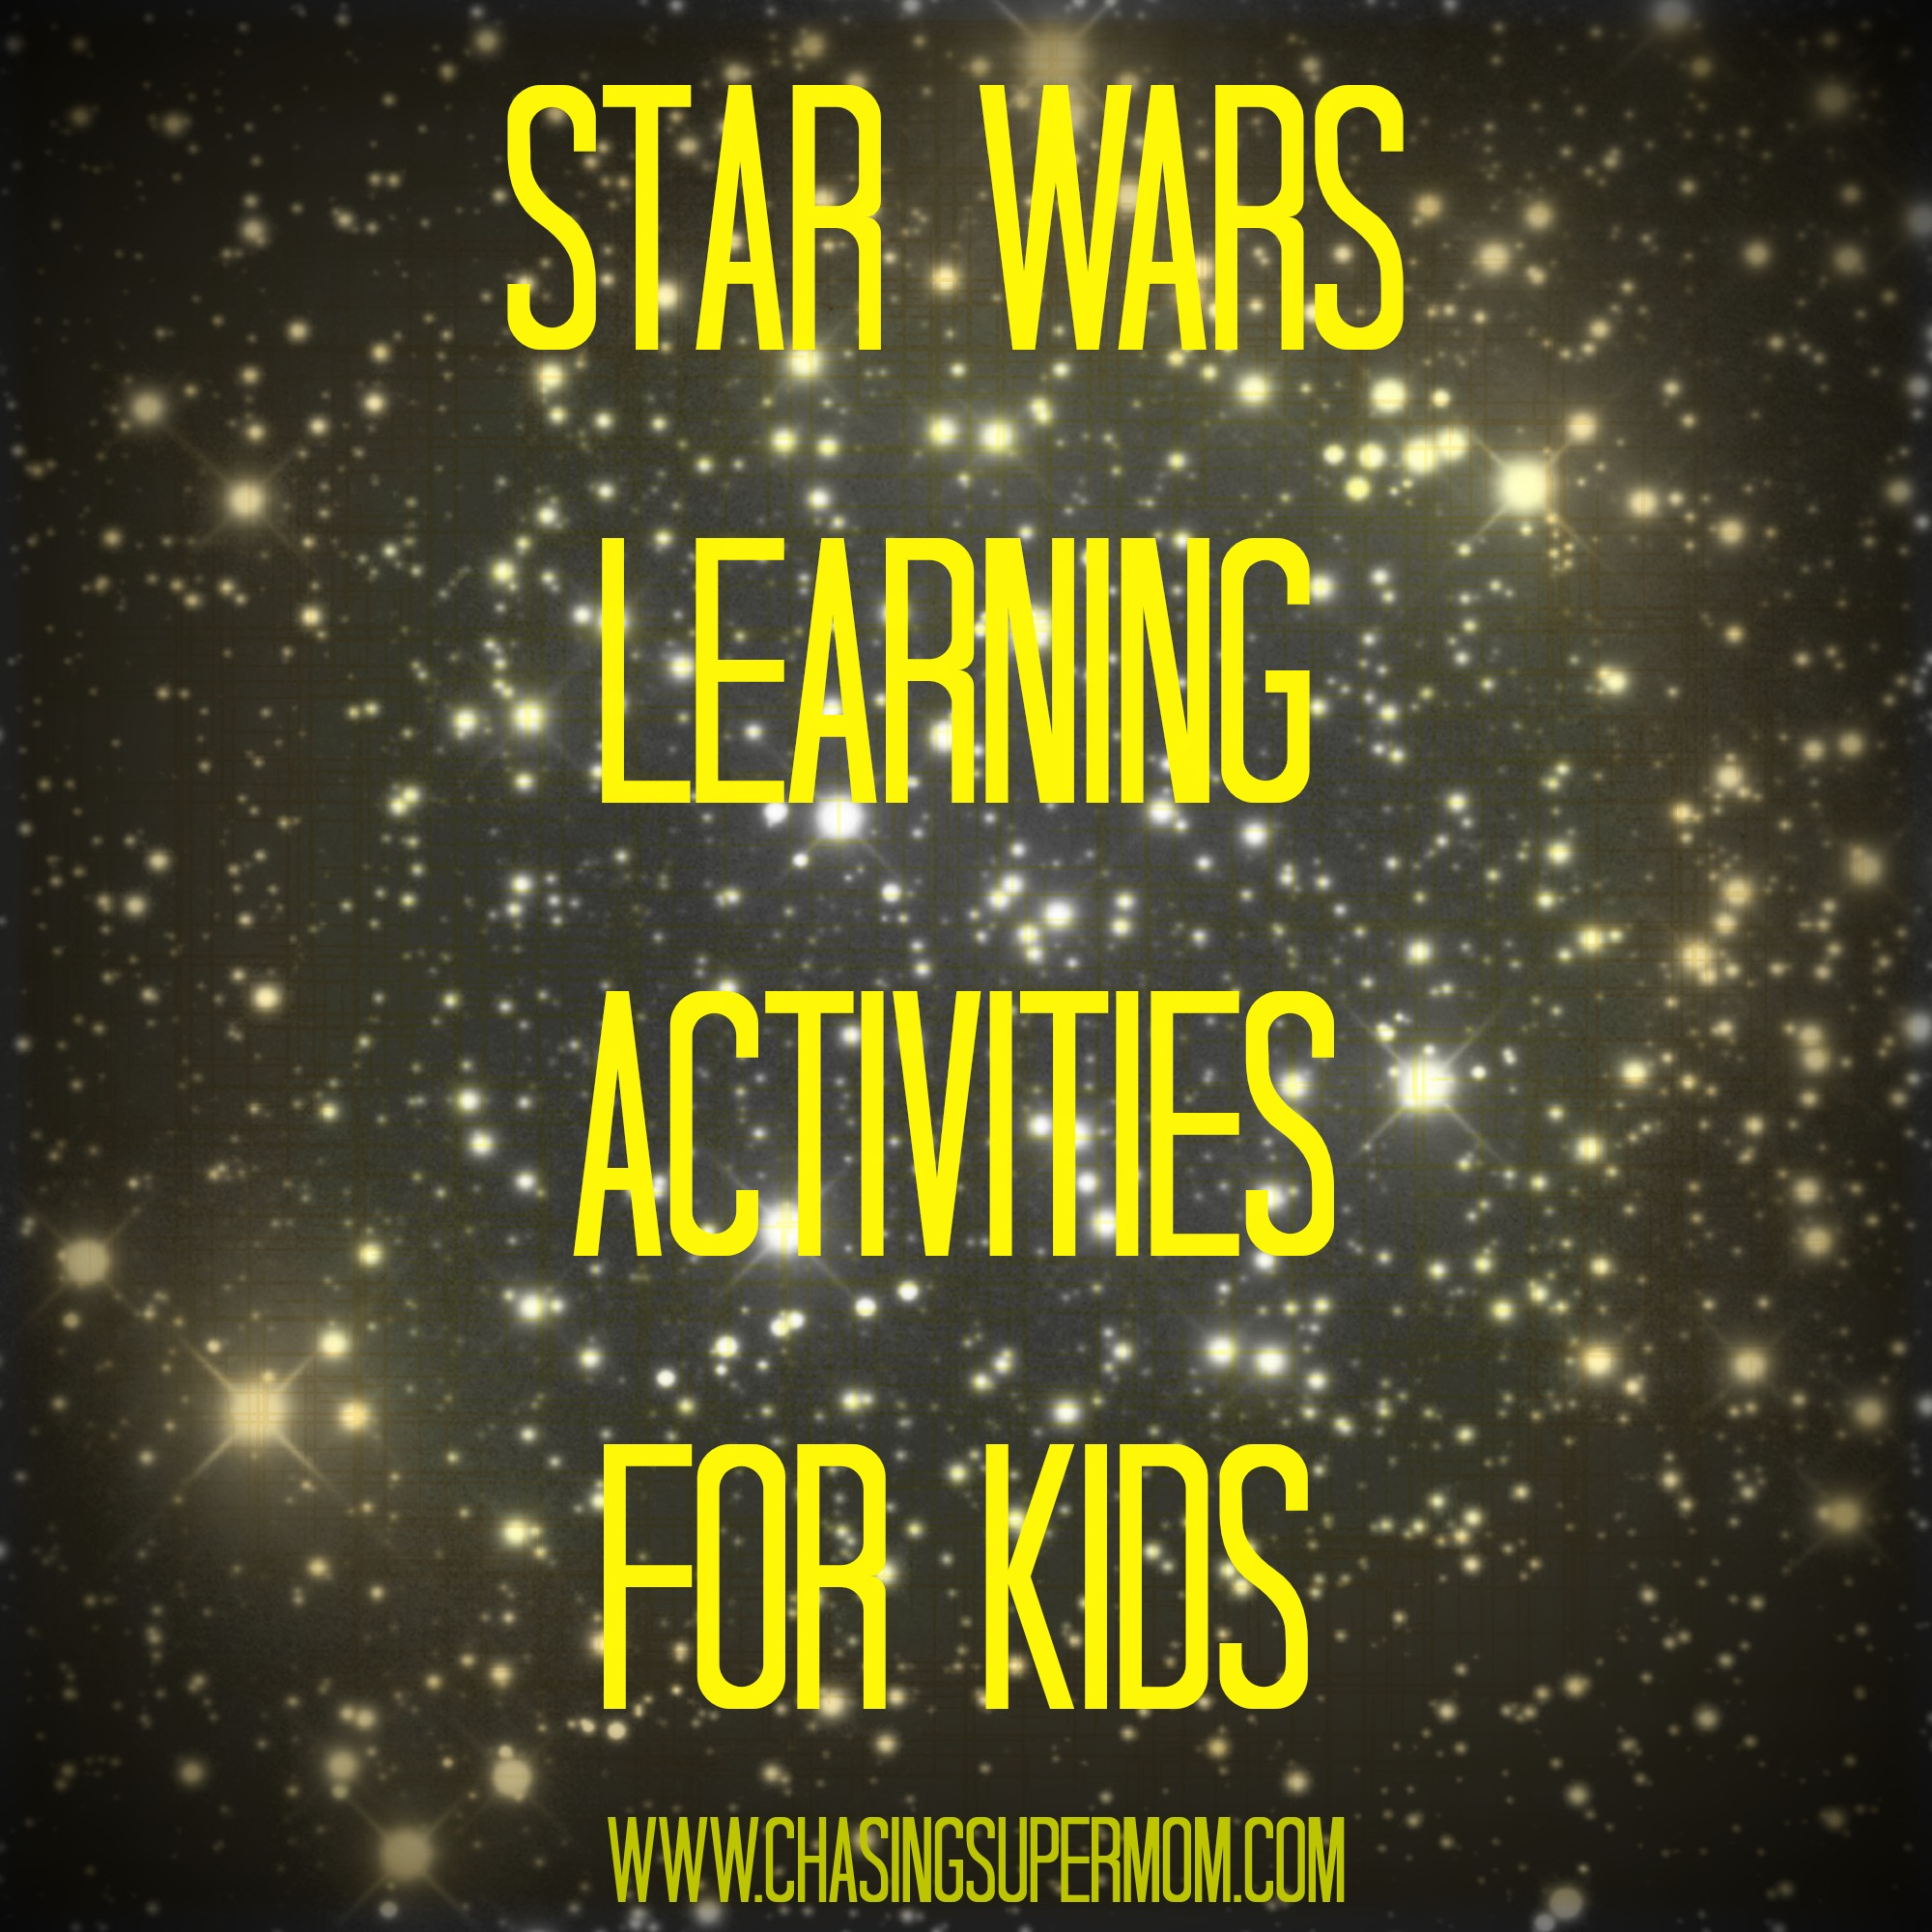 Star Wars Learning Activities for Kids